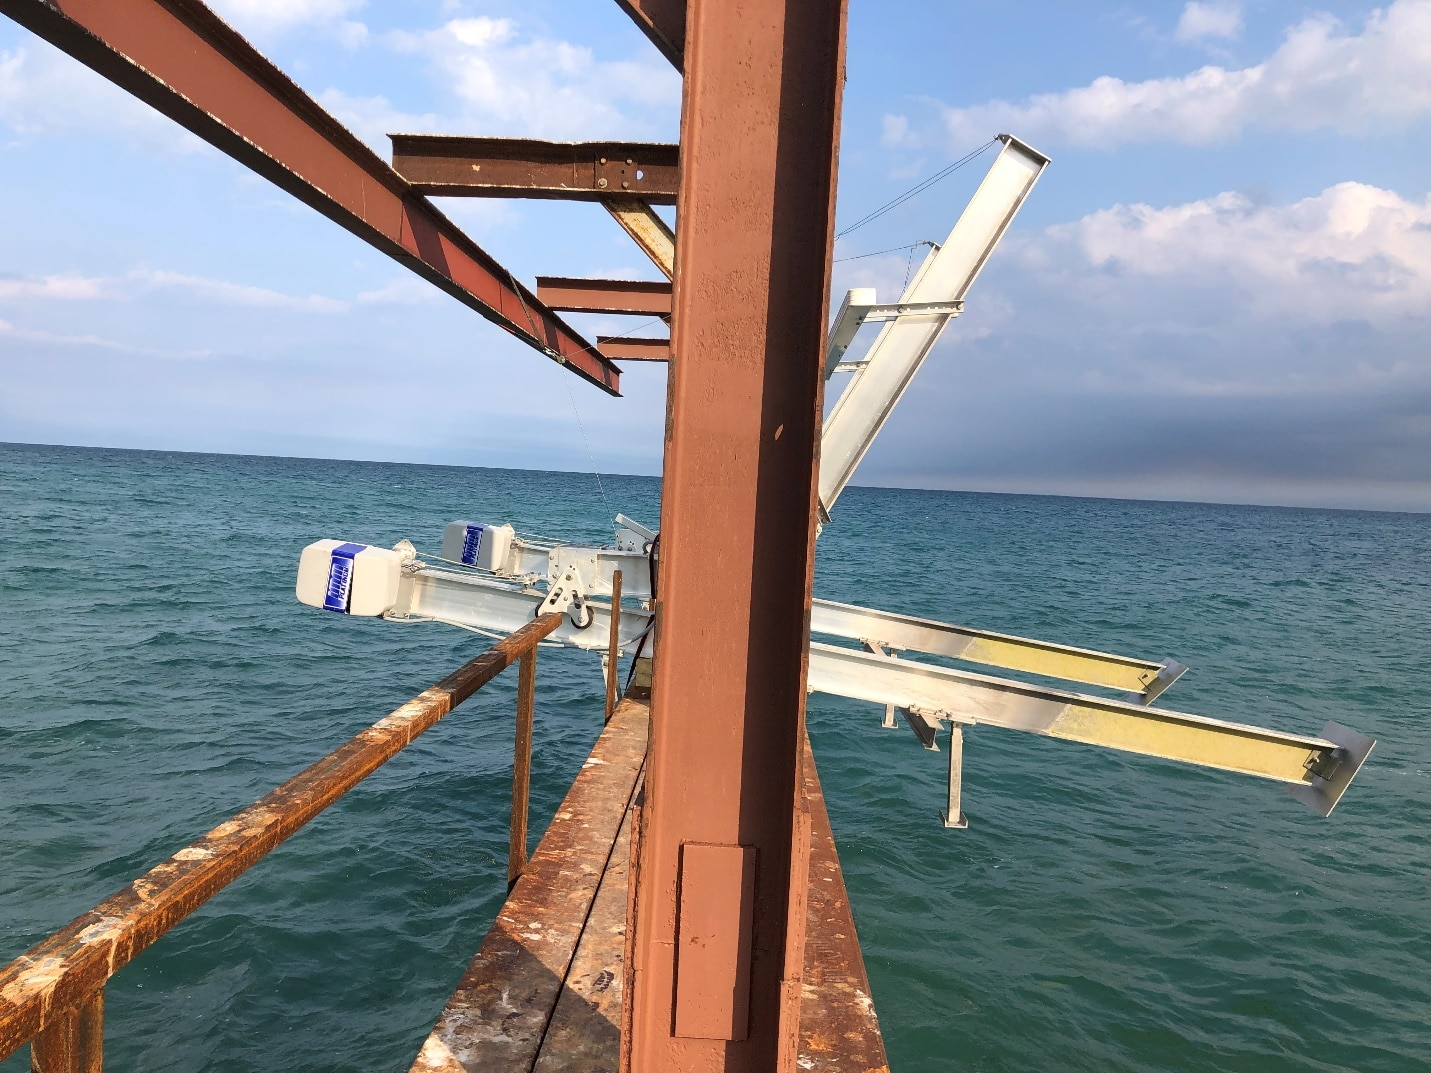 How To Protext Your Boat Lift during the winter